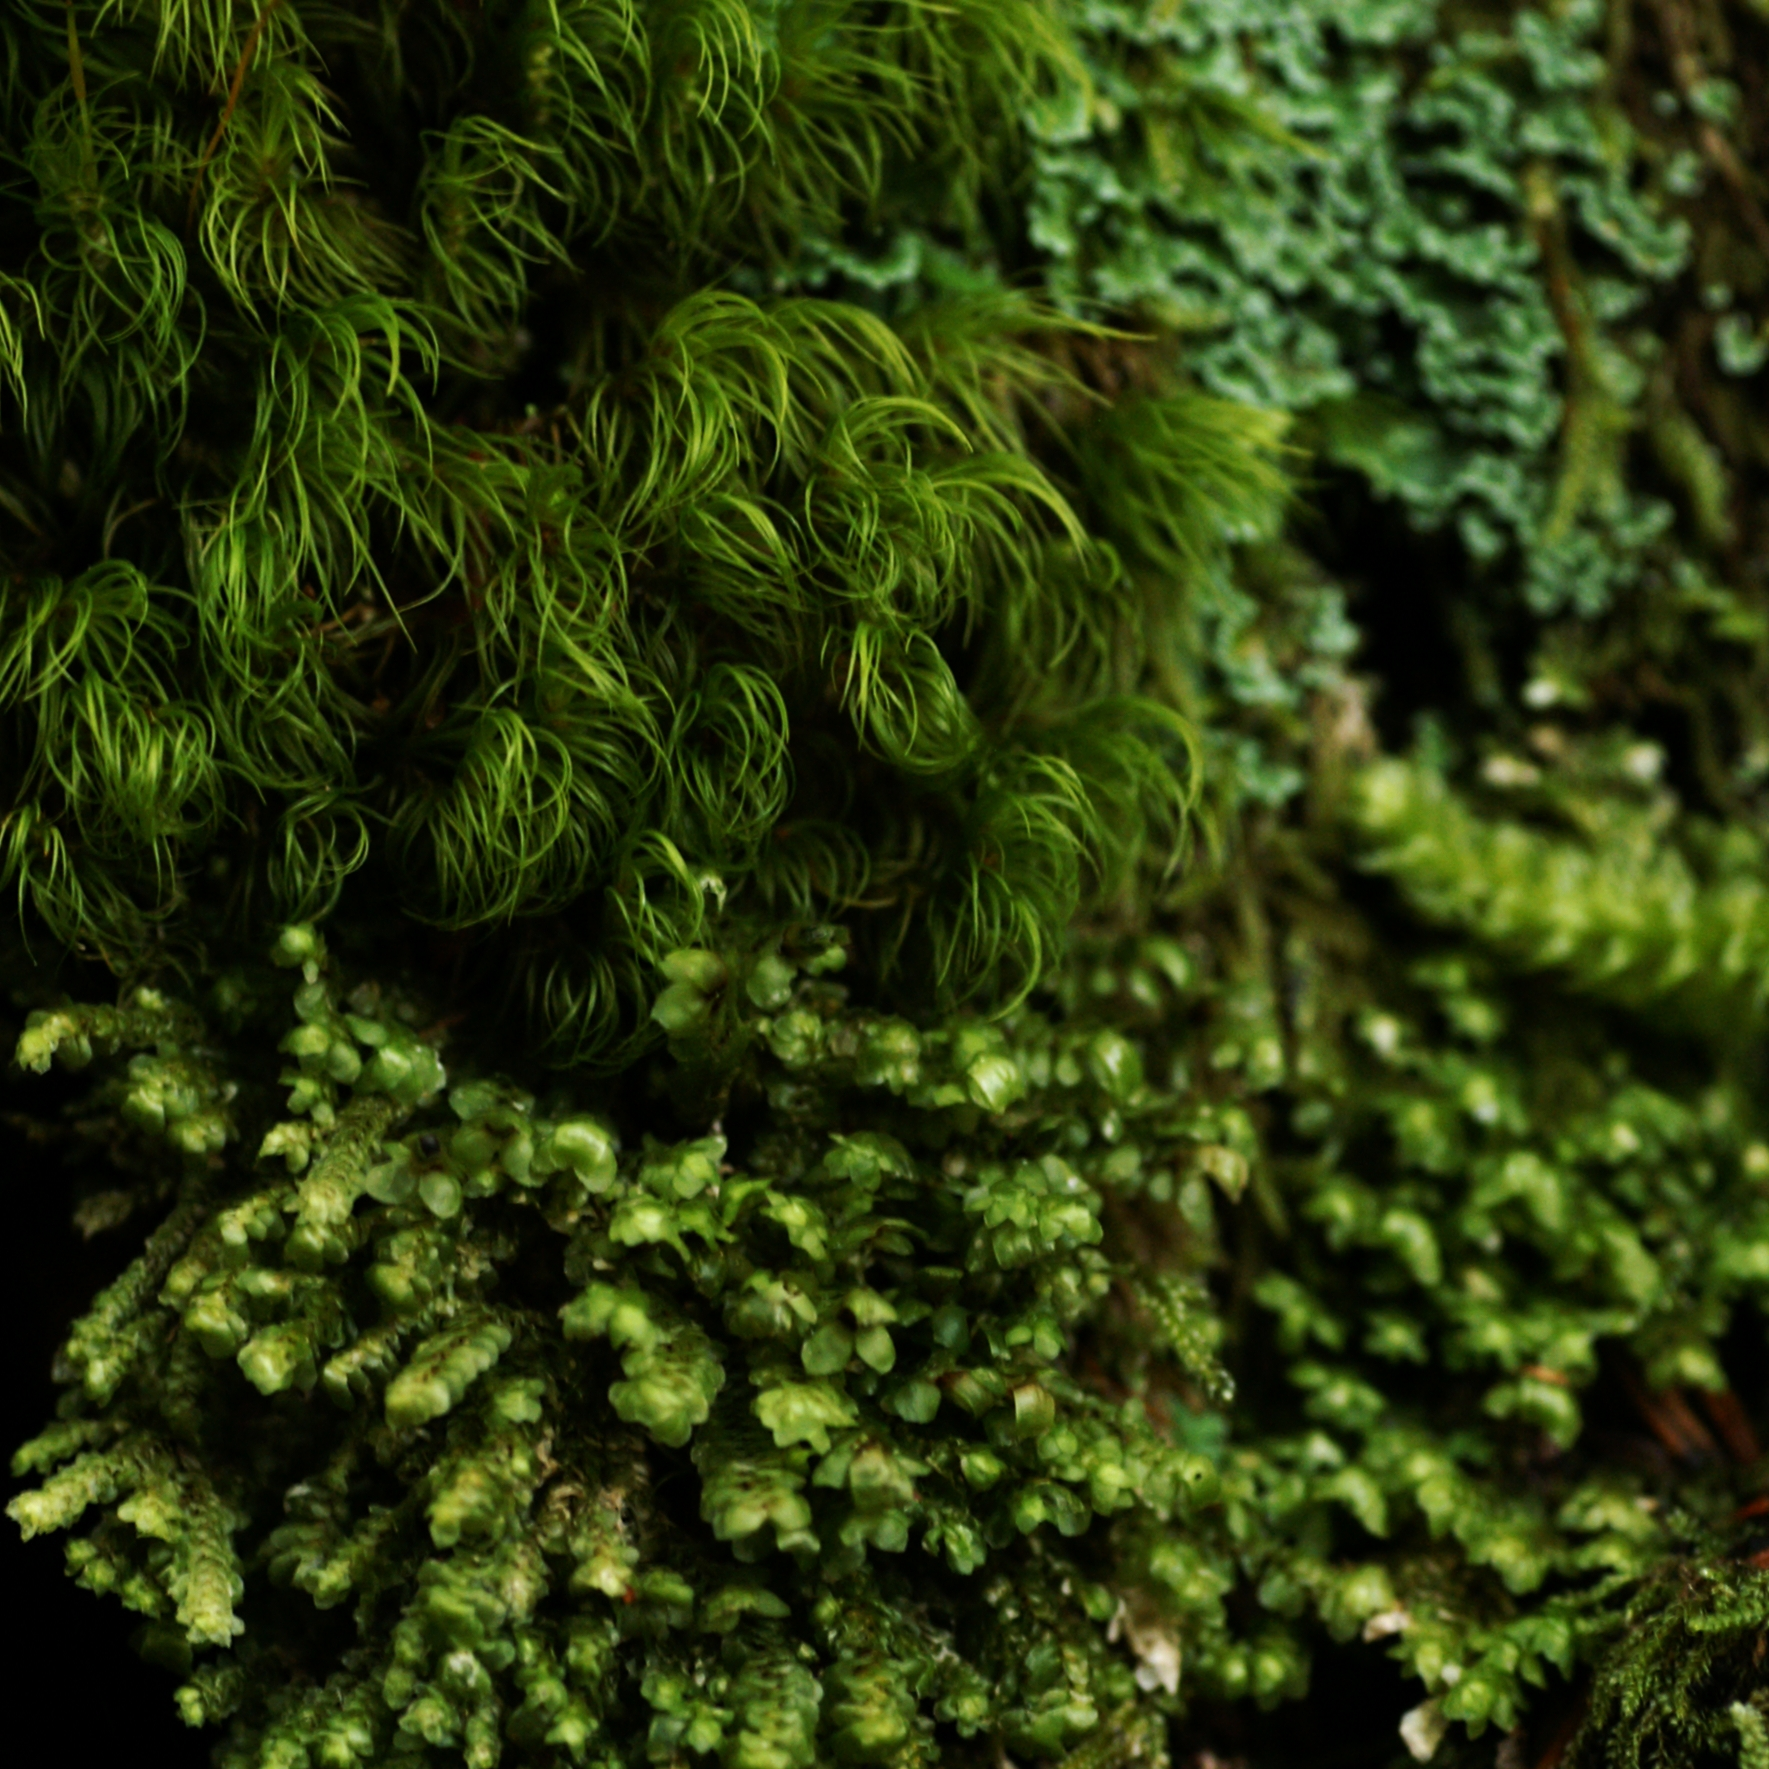 Moss and liverworts thrive in the lush forests of Washington State. Photograph by Minette Layne.